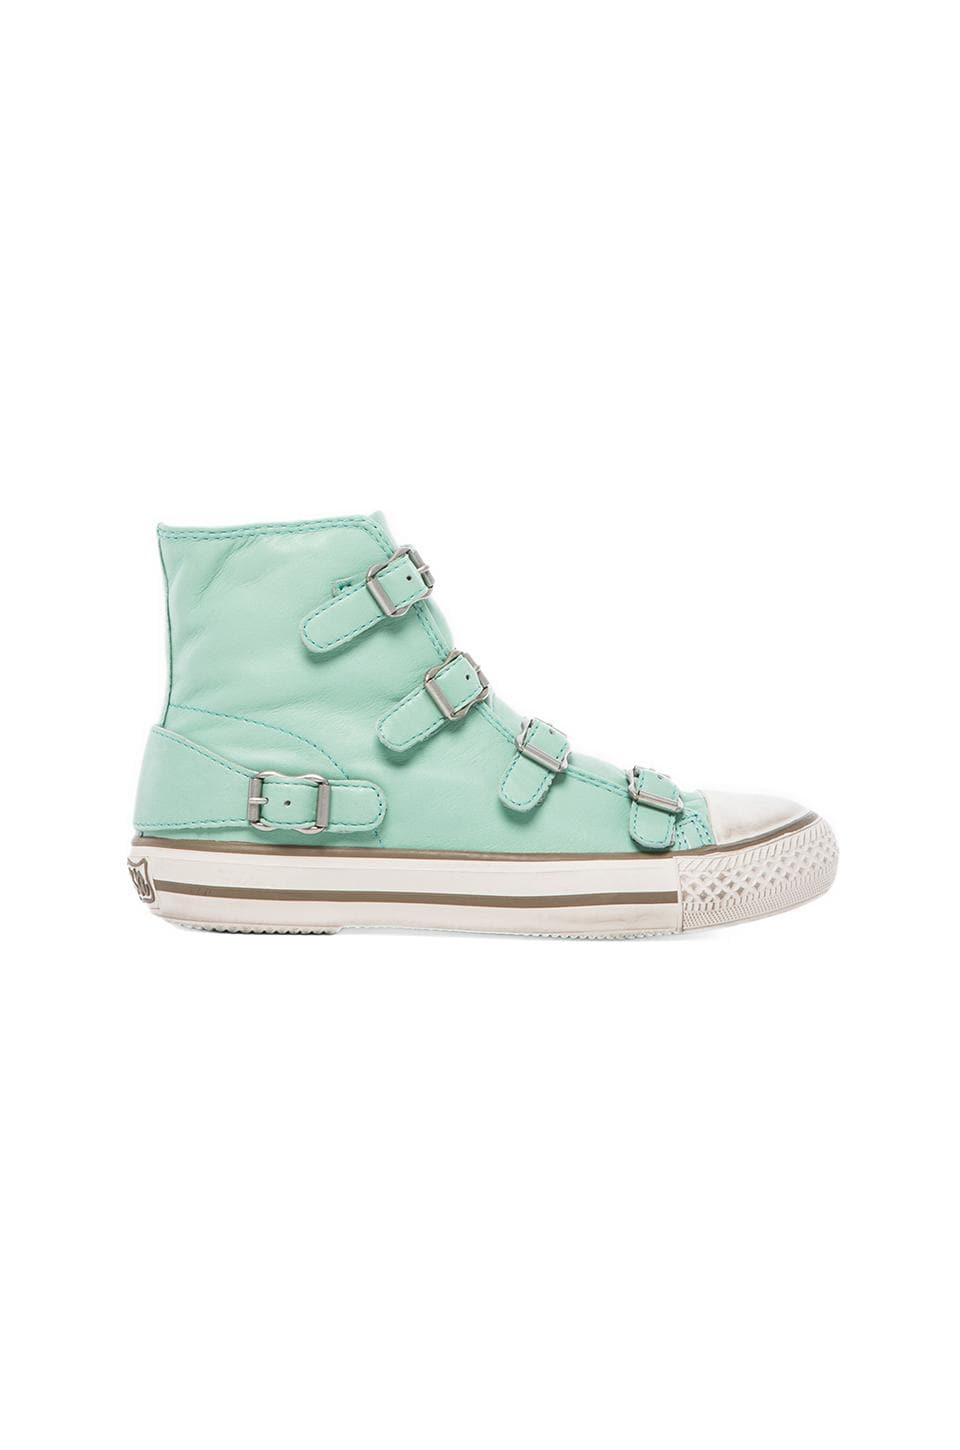 Ash Virgin Sneaker in Mint